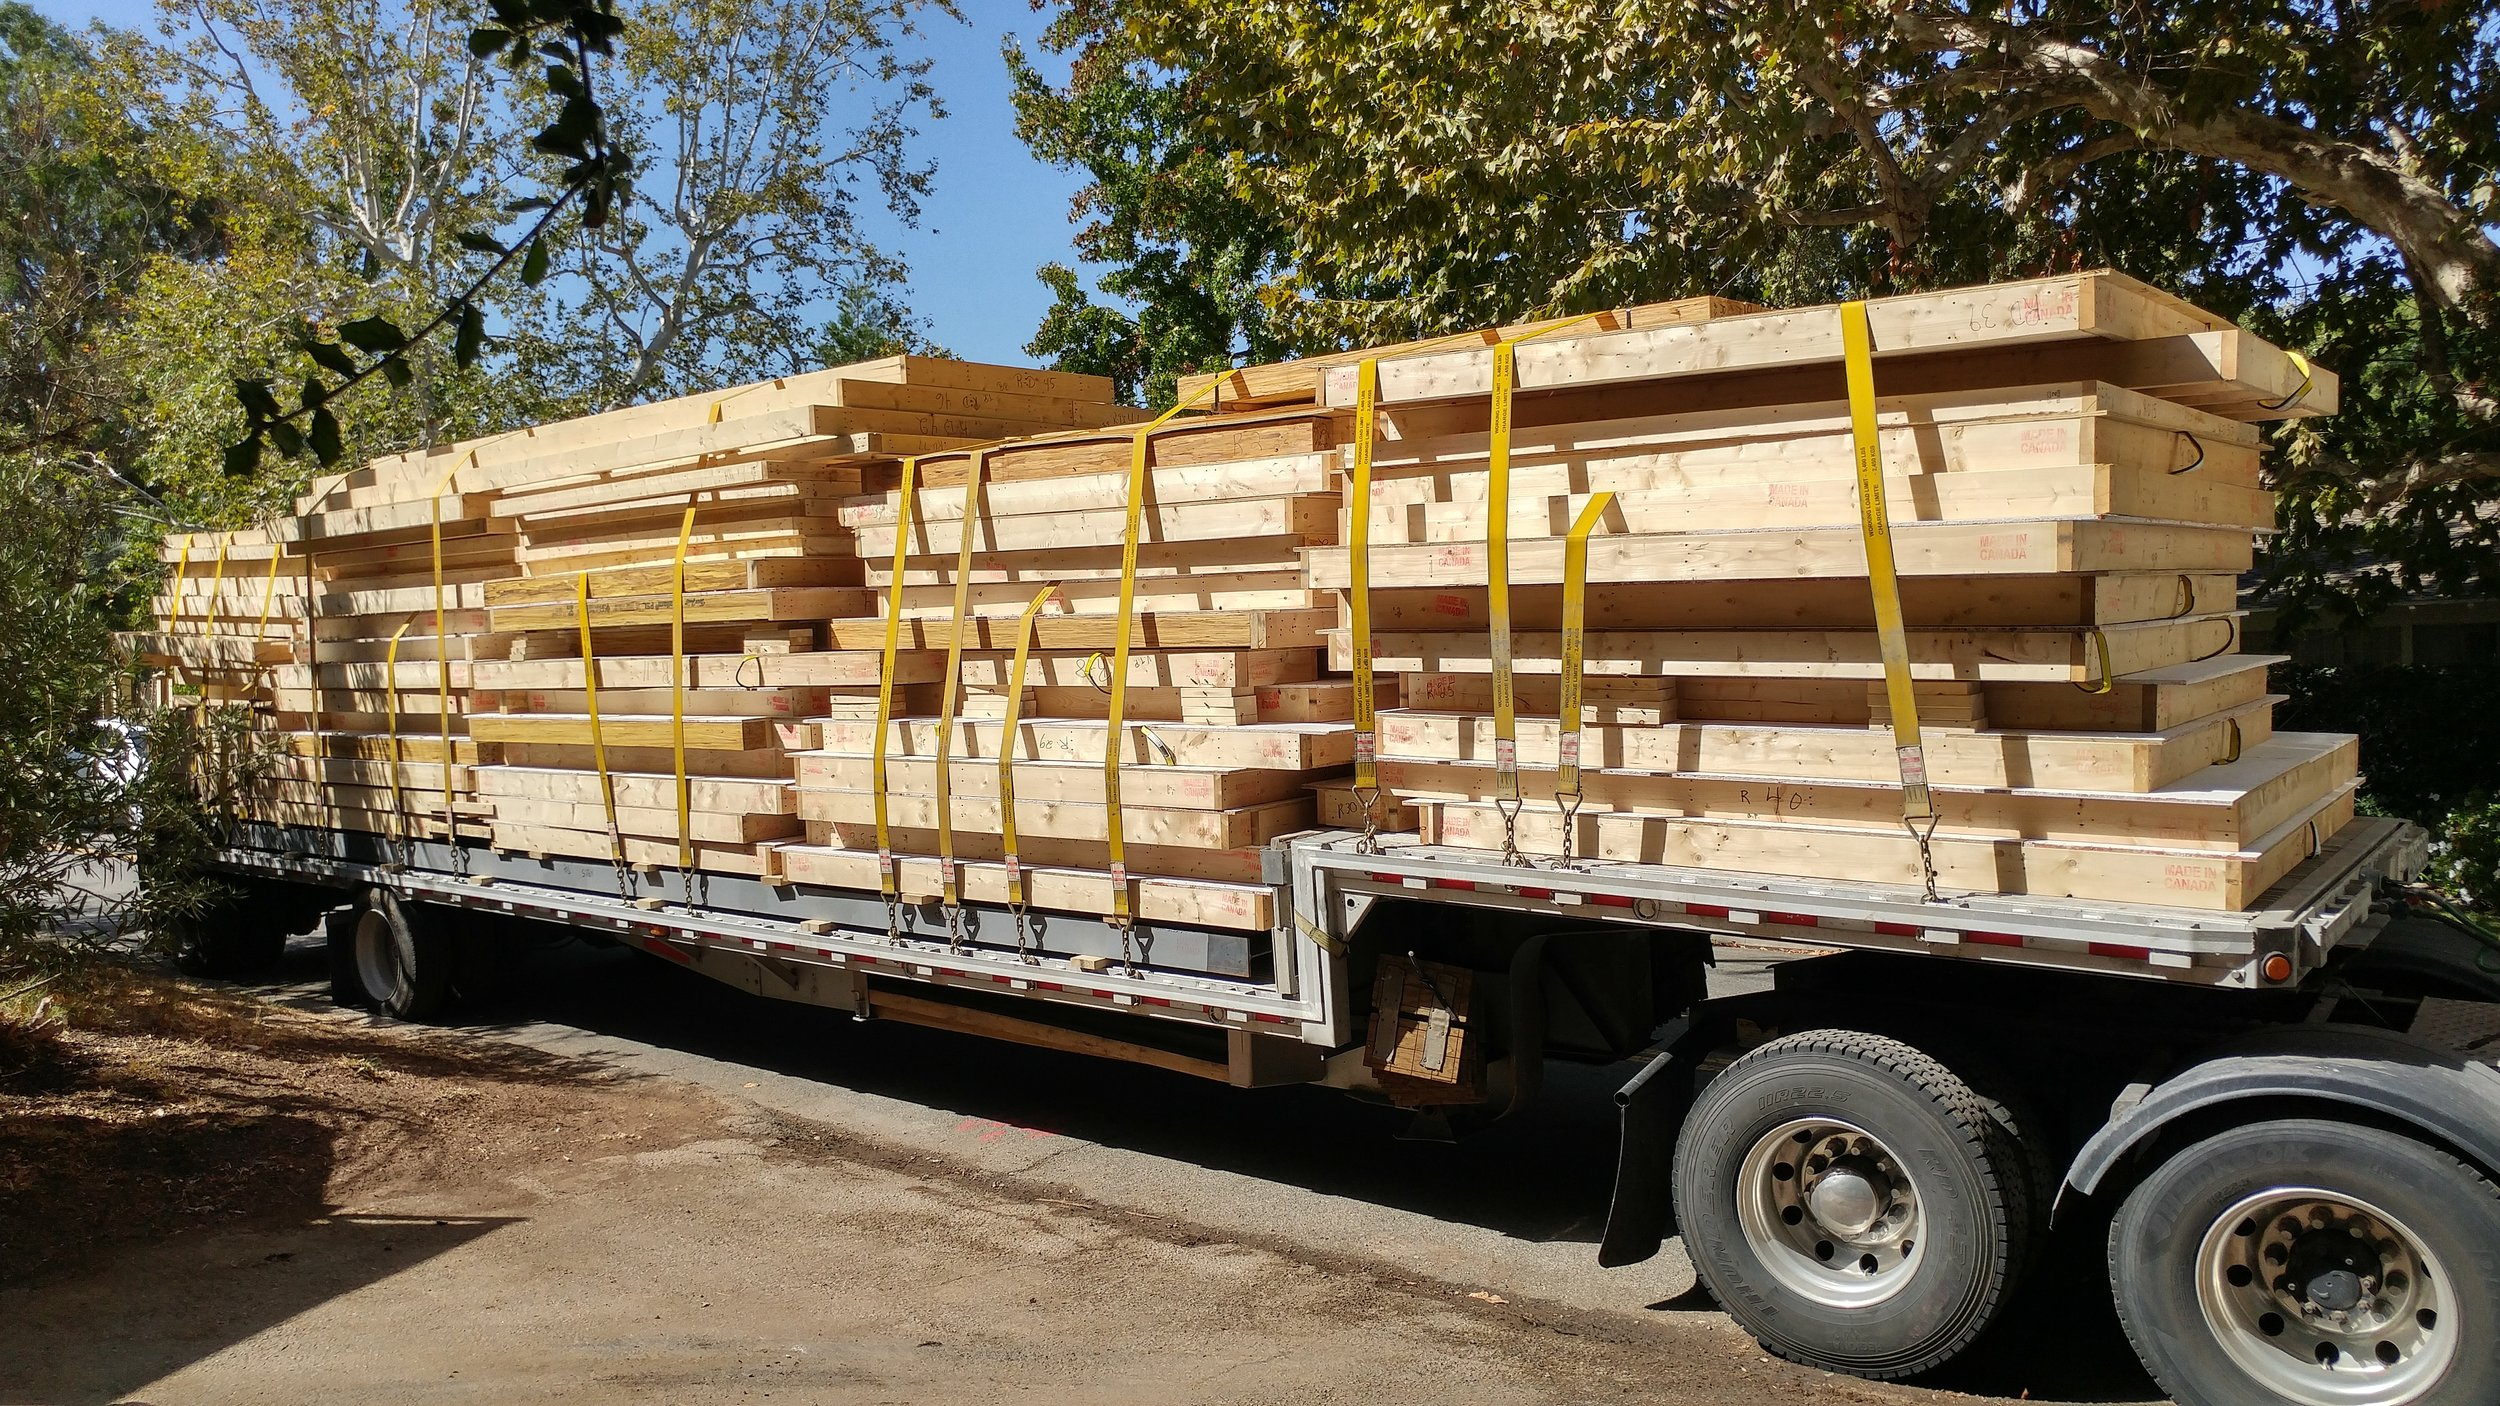 turkel_modern_design_prefab_prefabricated_package_pricing_panel_delivery_truck.jpg